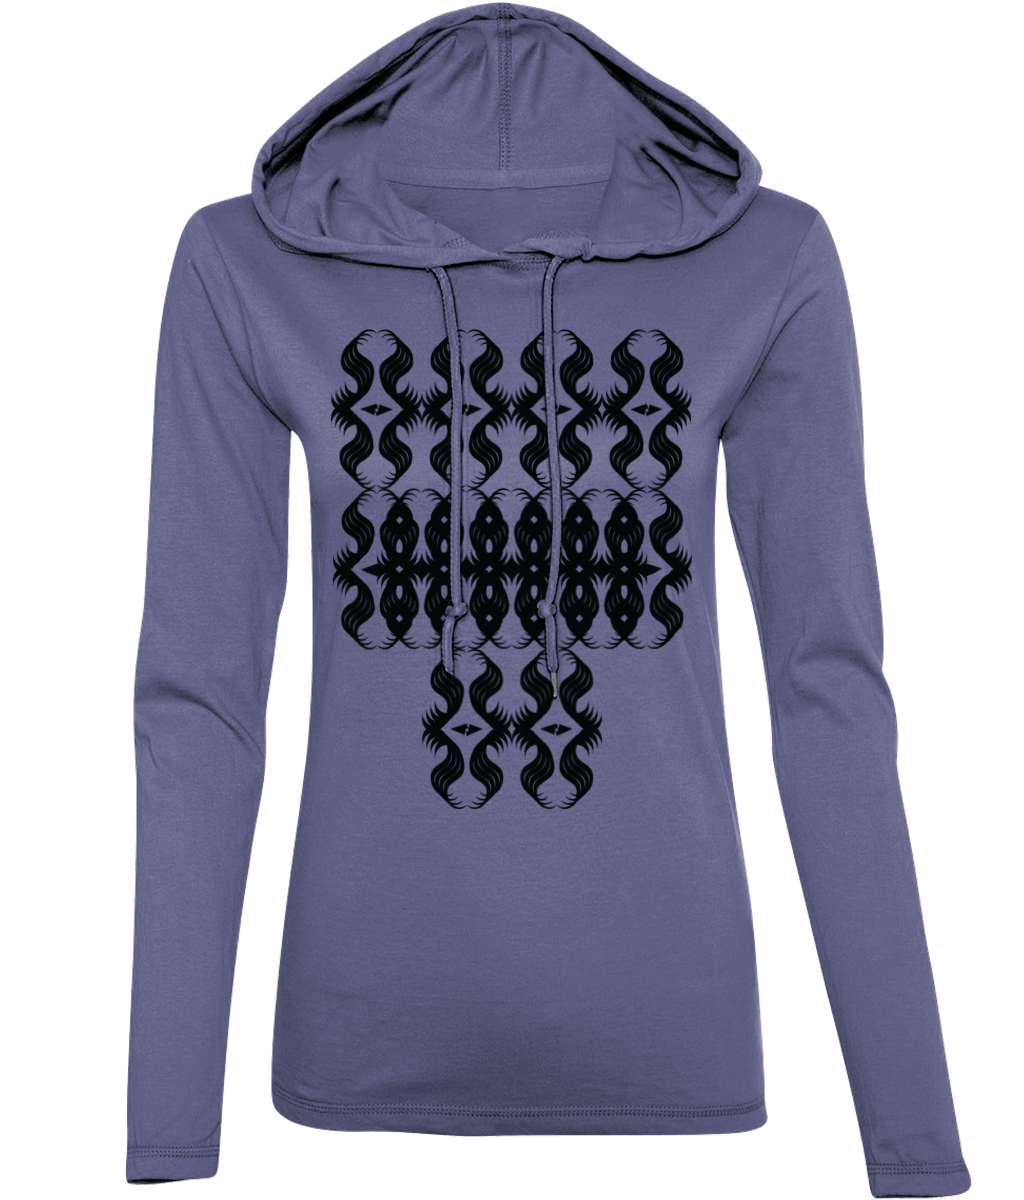 All-Seeing Eyes Long-Sleeved [Heather Blue, Front Print] Hooded Women's T-Shirt